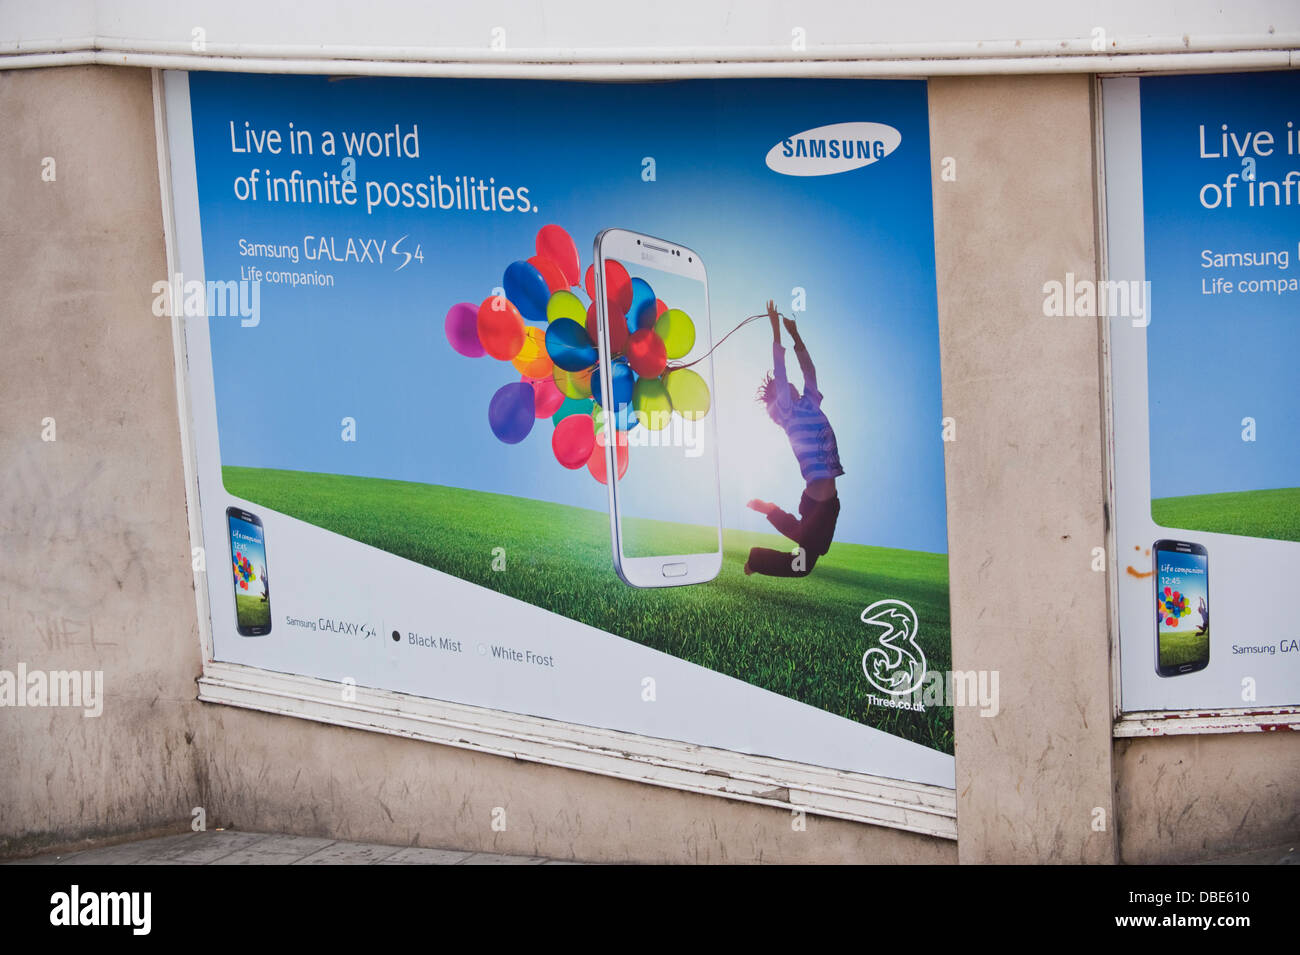 Samsung Galaxy S4 smartphone advertising billboard site on side of building in Brighton East Sussex England UK - Stock Image